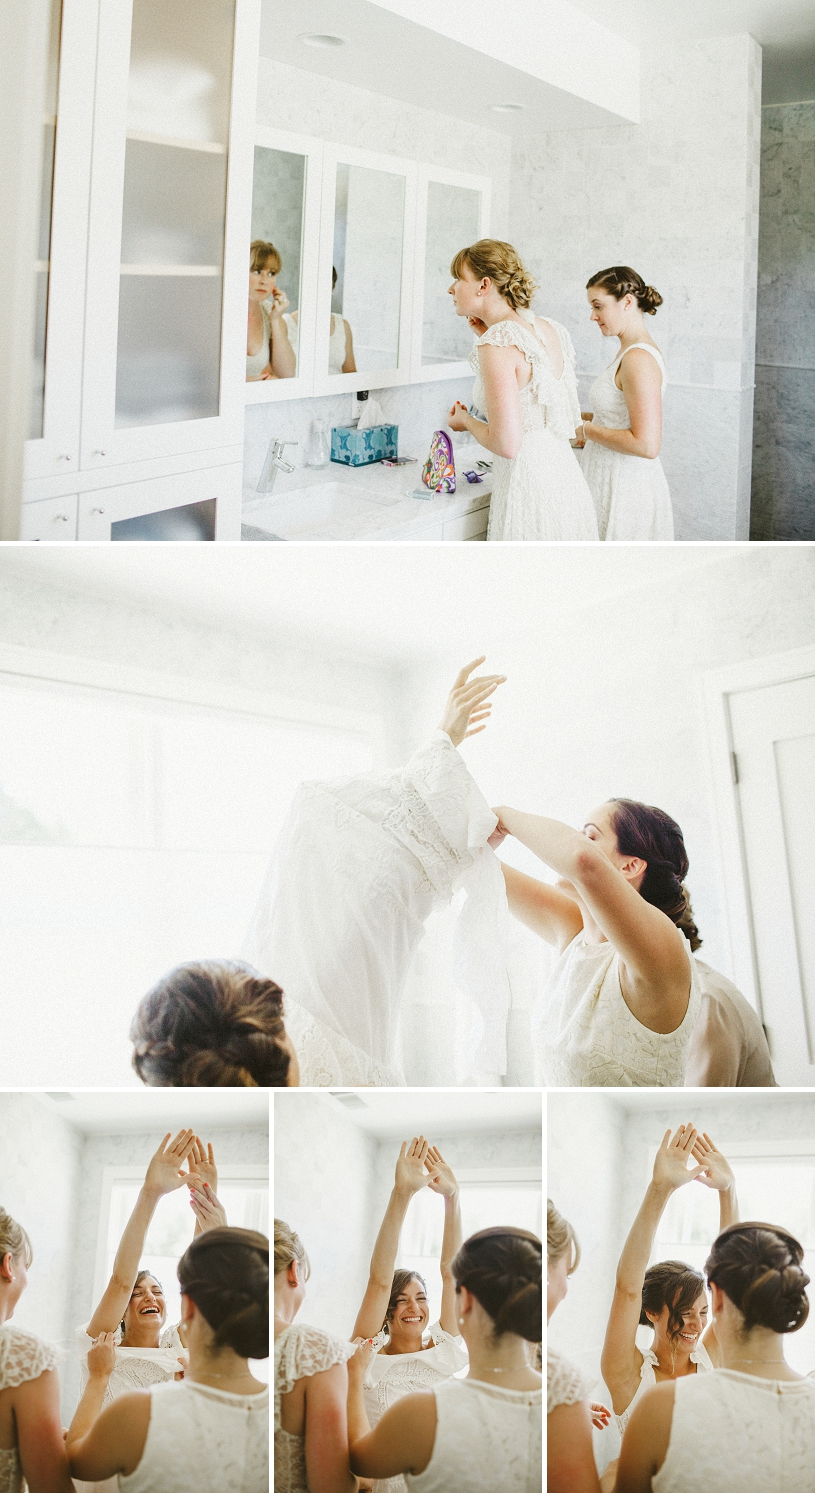 hilarious photographs of a bride getting her dress on